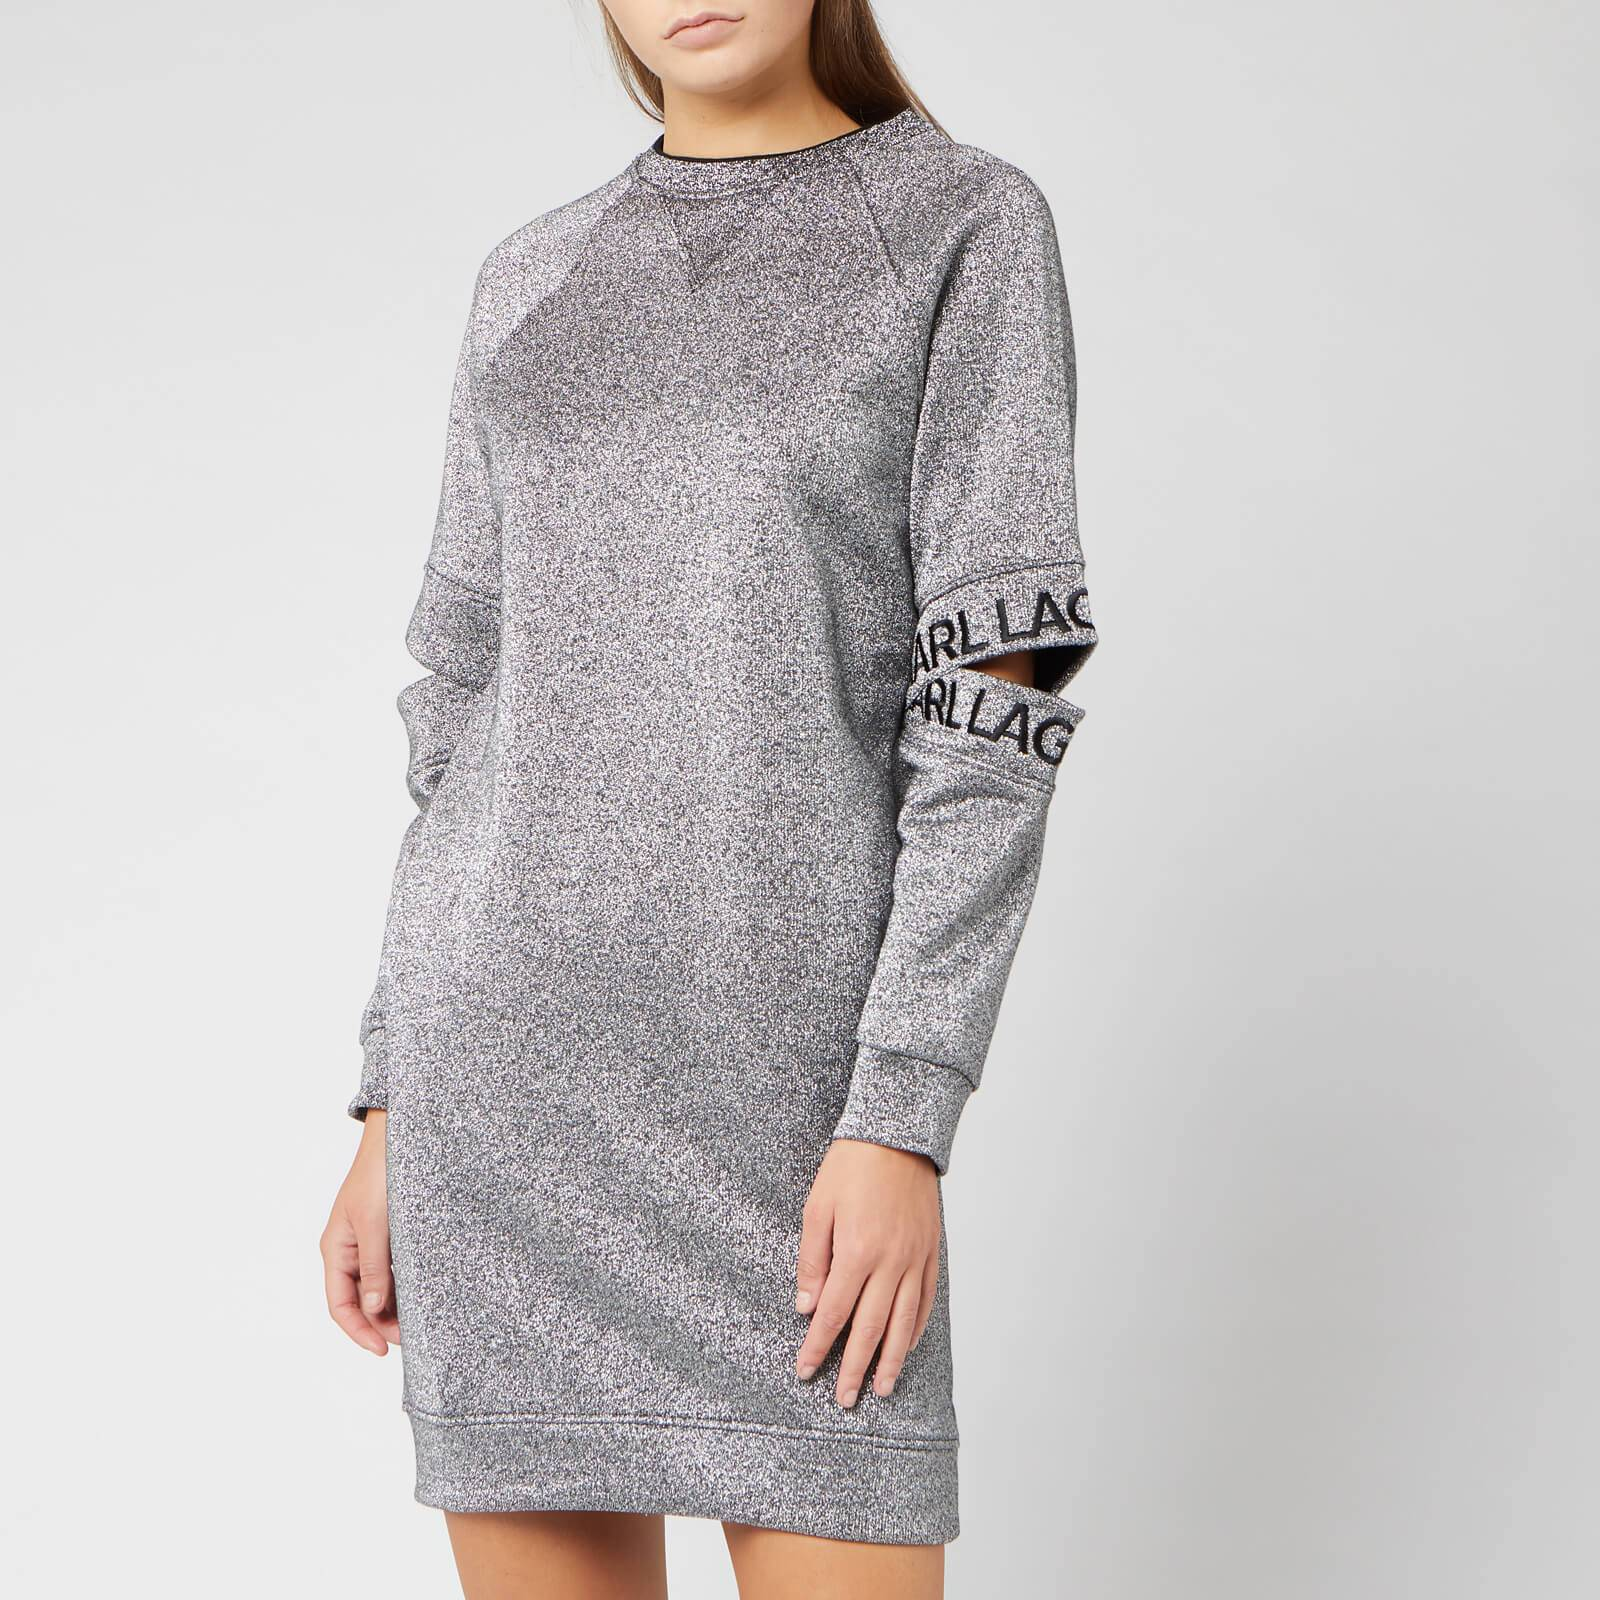 Karl Lagerfeld Women's Cut Out Sleeve Sweat Dress - Silver - M